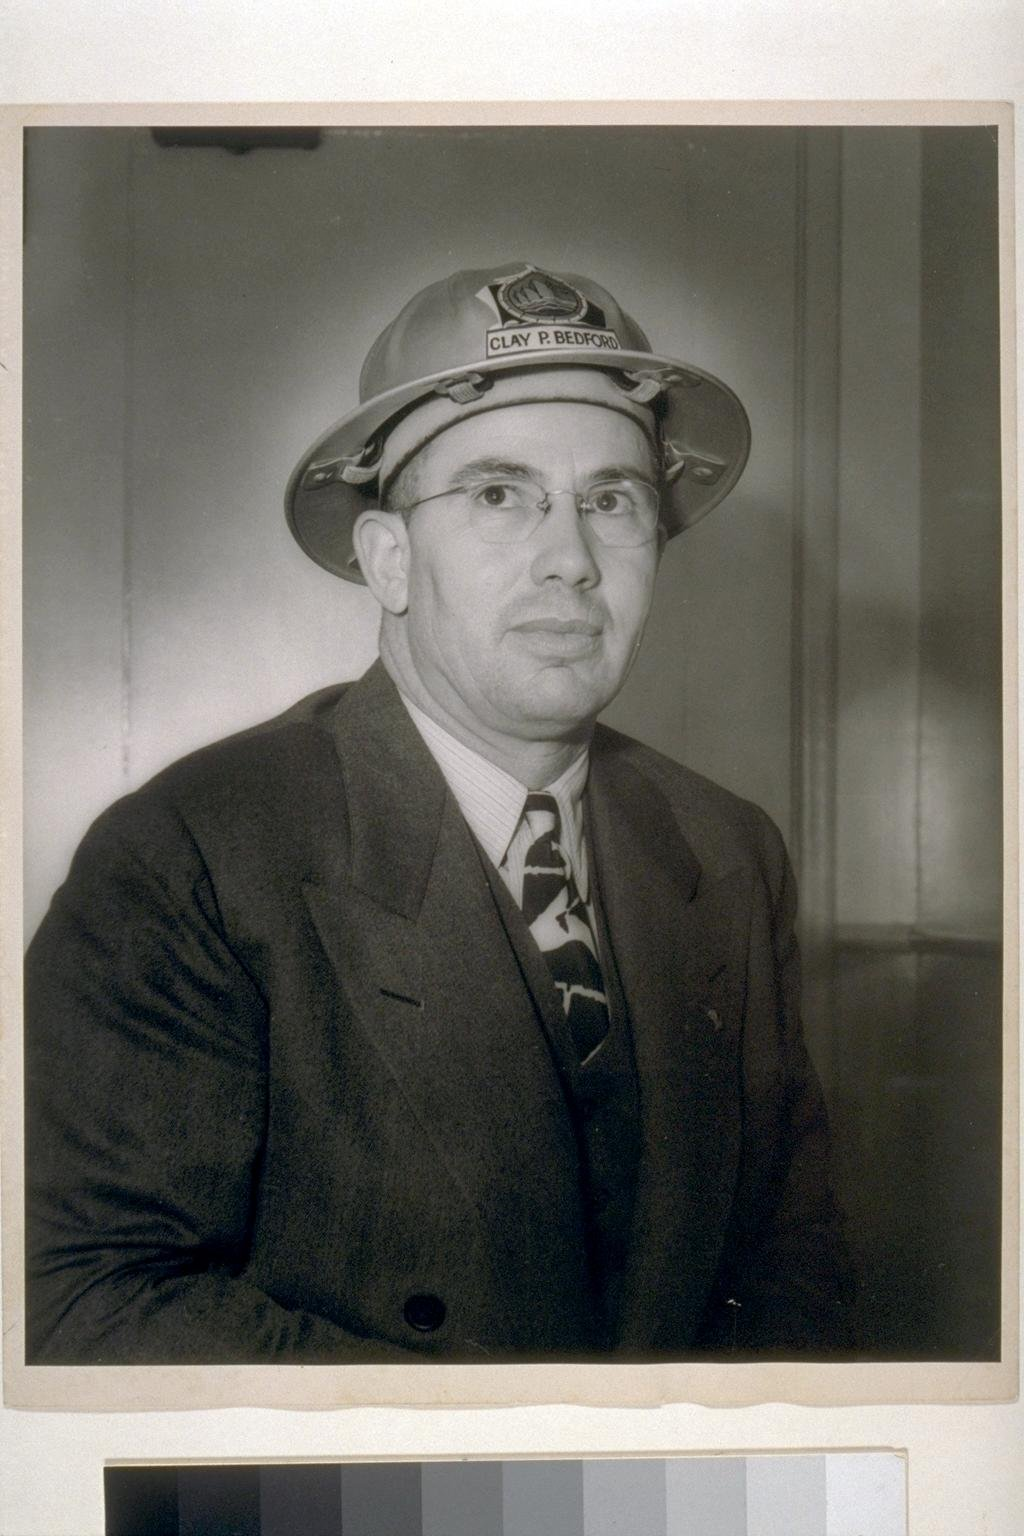 Clay P. Bedford, Vice President and General Manager of Kaiser's Richmond yards, and one of many brilliant logistical minds that helped revolutionize the shipbuilding industry during World War II. (UC Berkeley, Bancroft Library)